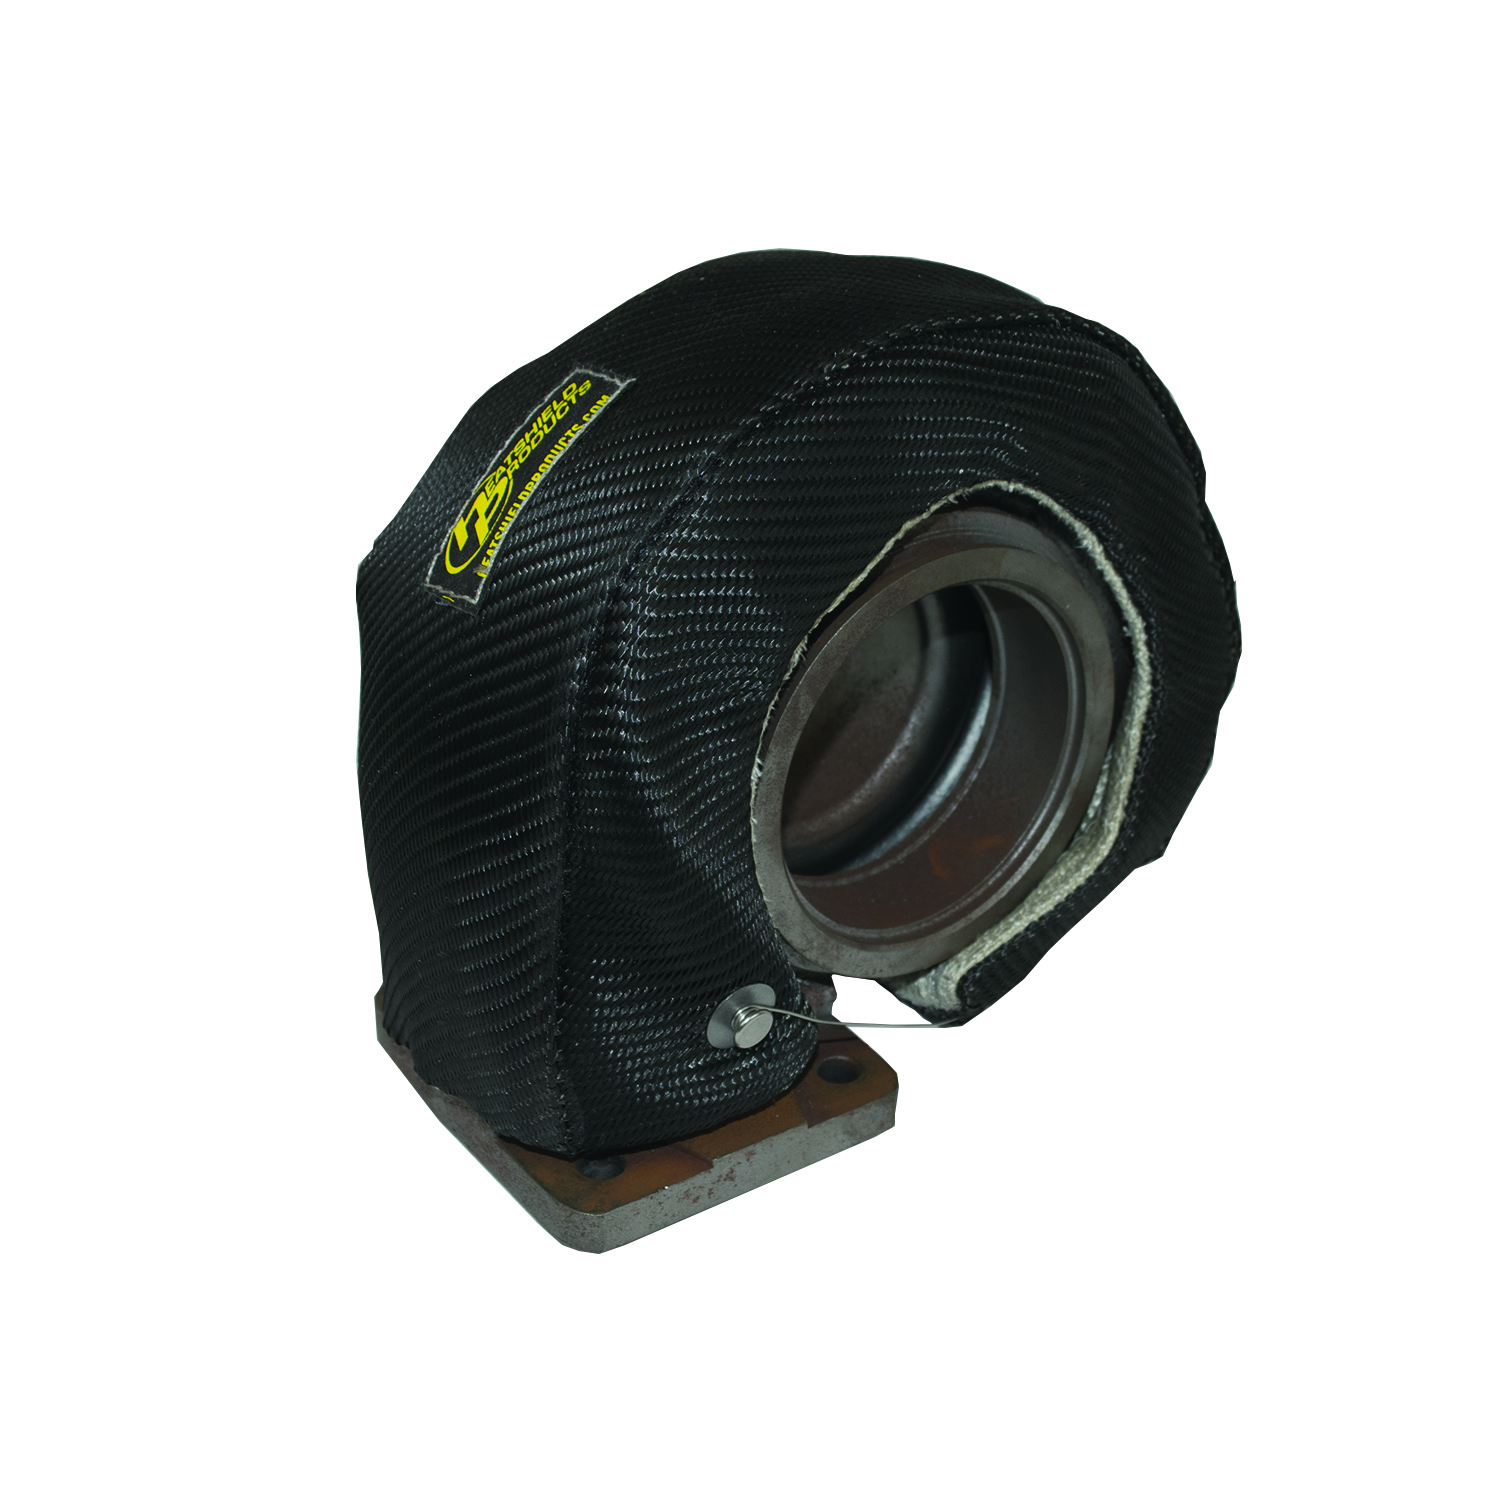 Stealth Turbo Shield from Heatshield Products